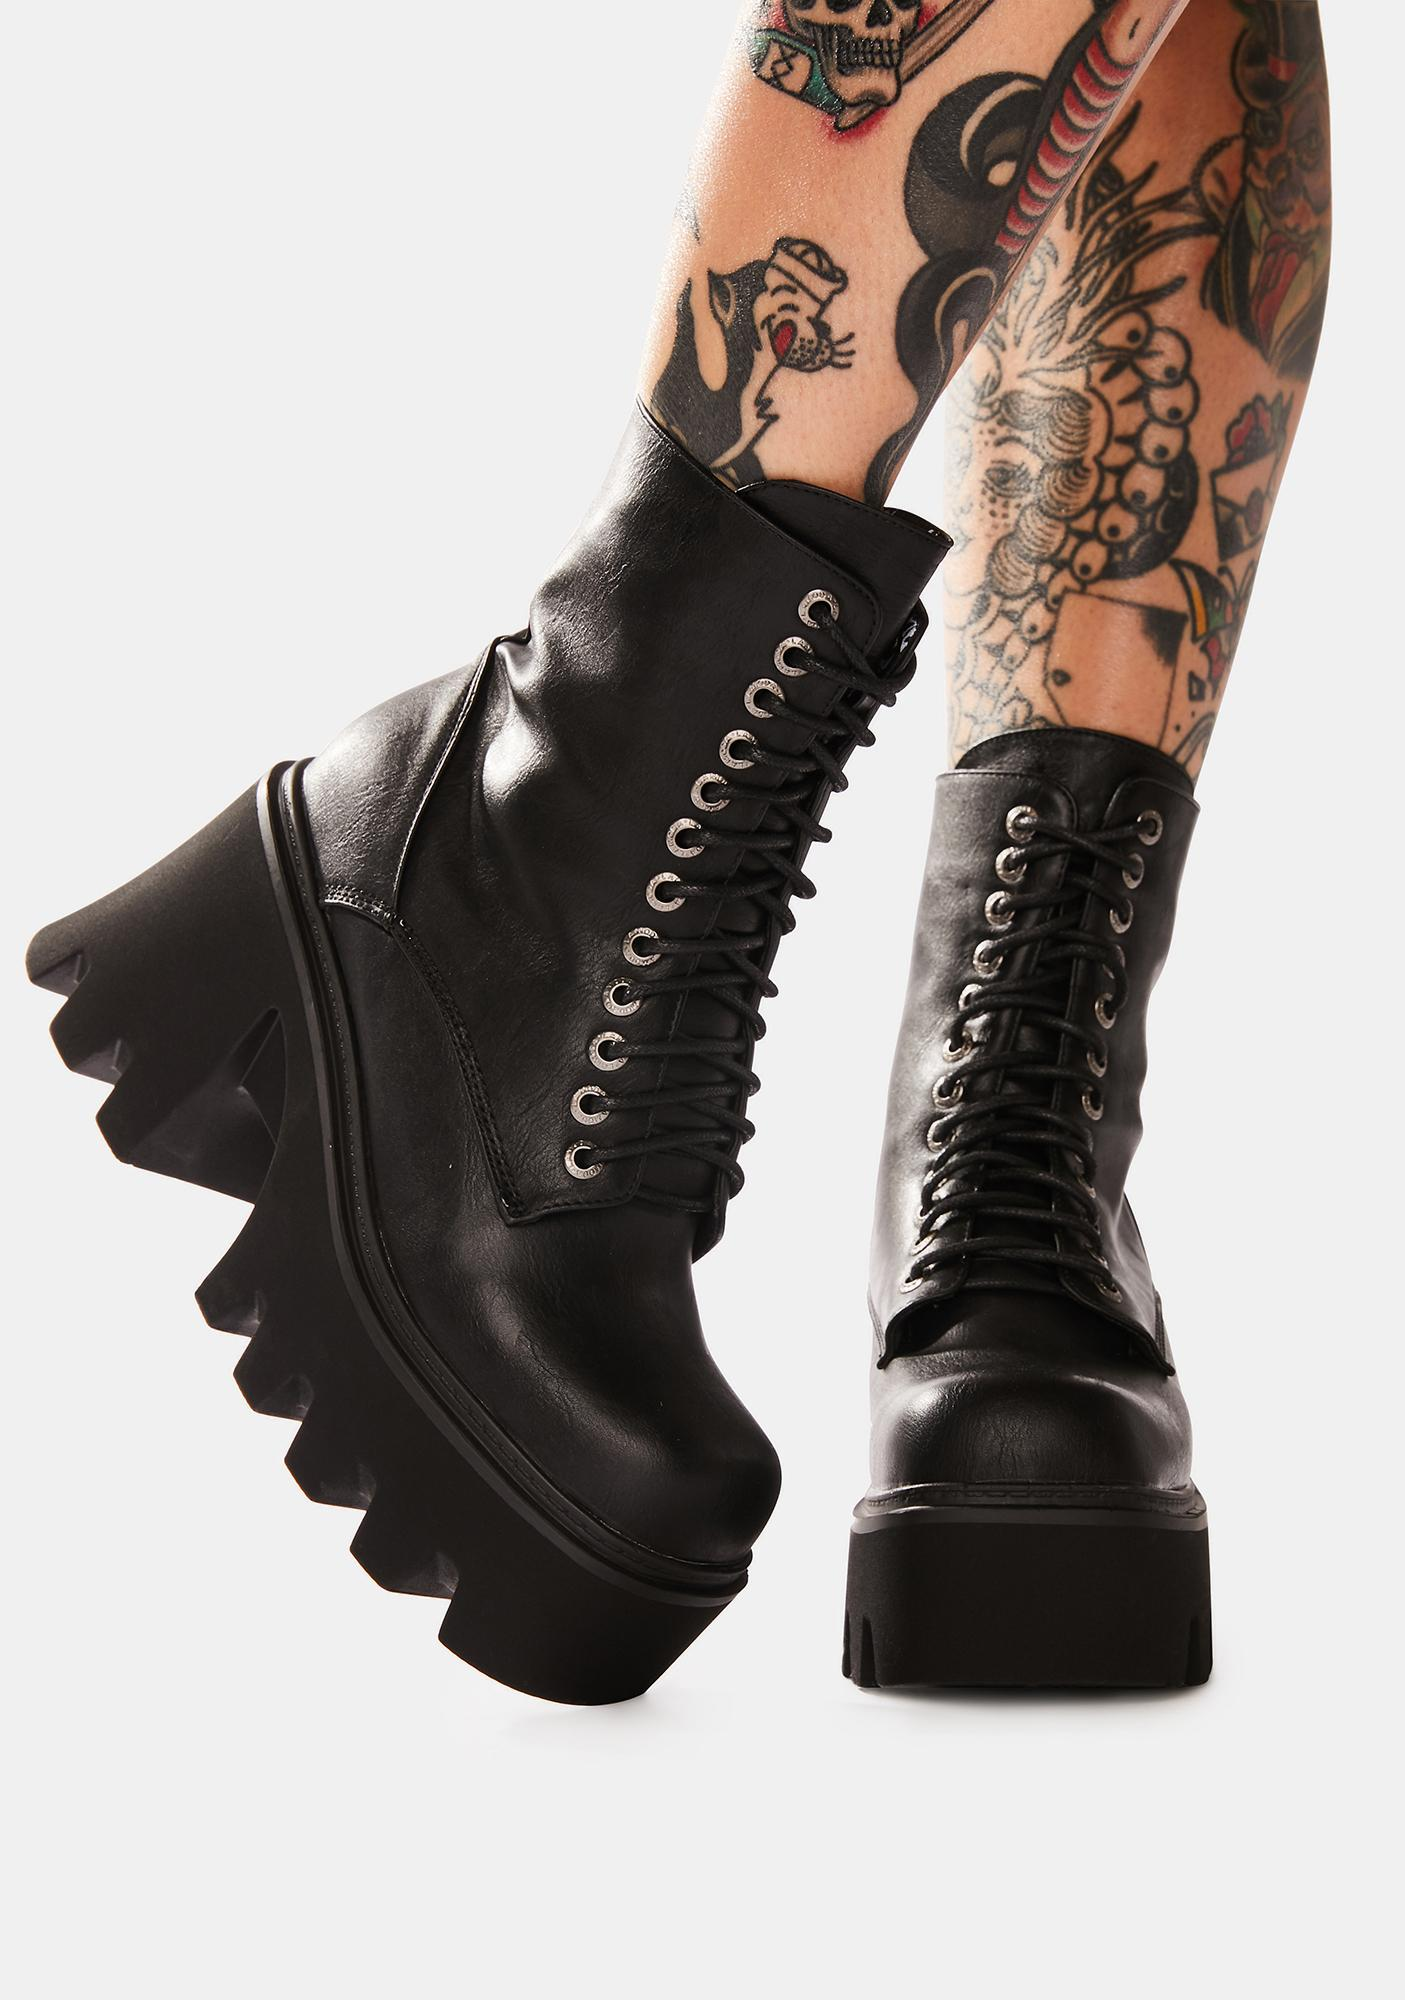 Lamoda Let's Loosen Up Lace Up Boots